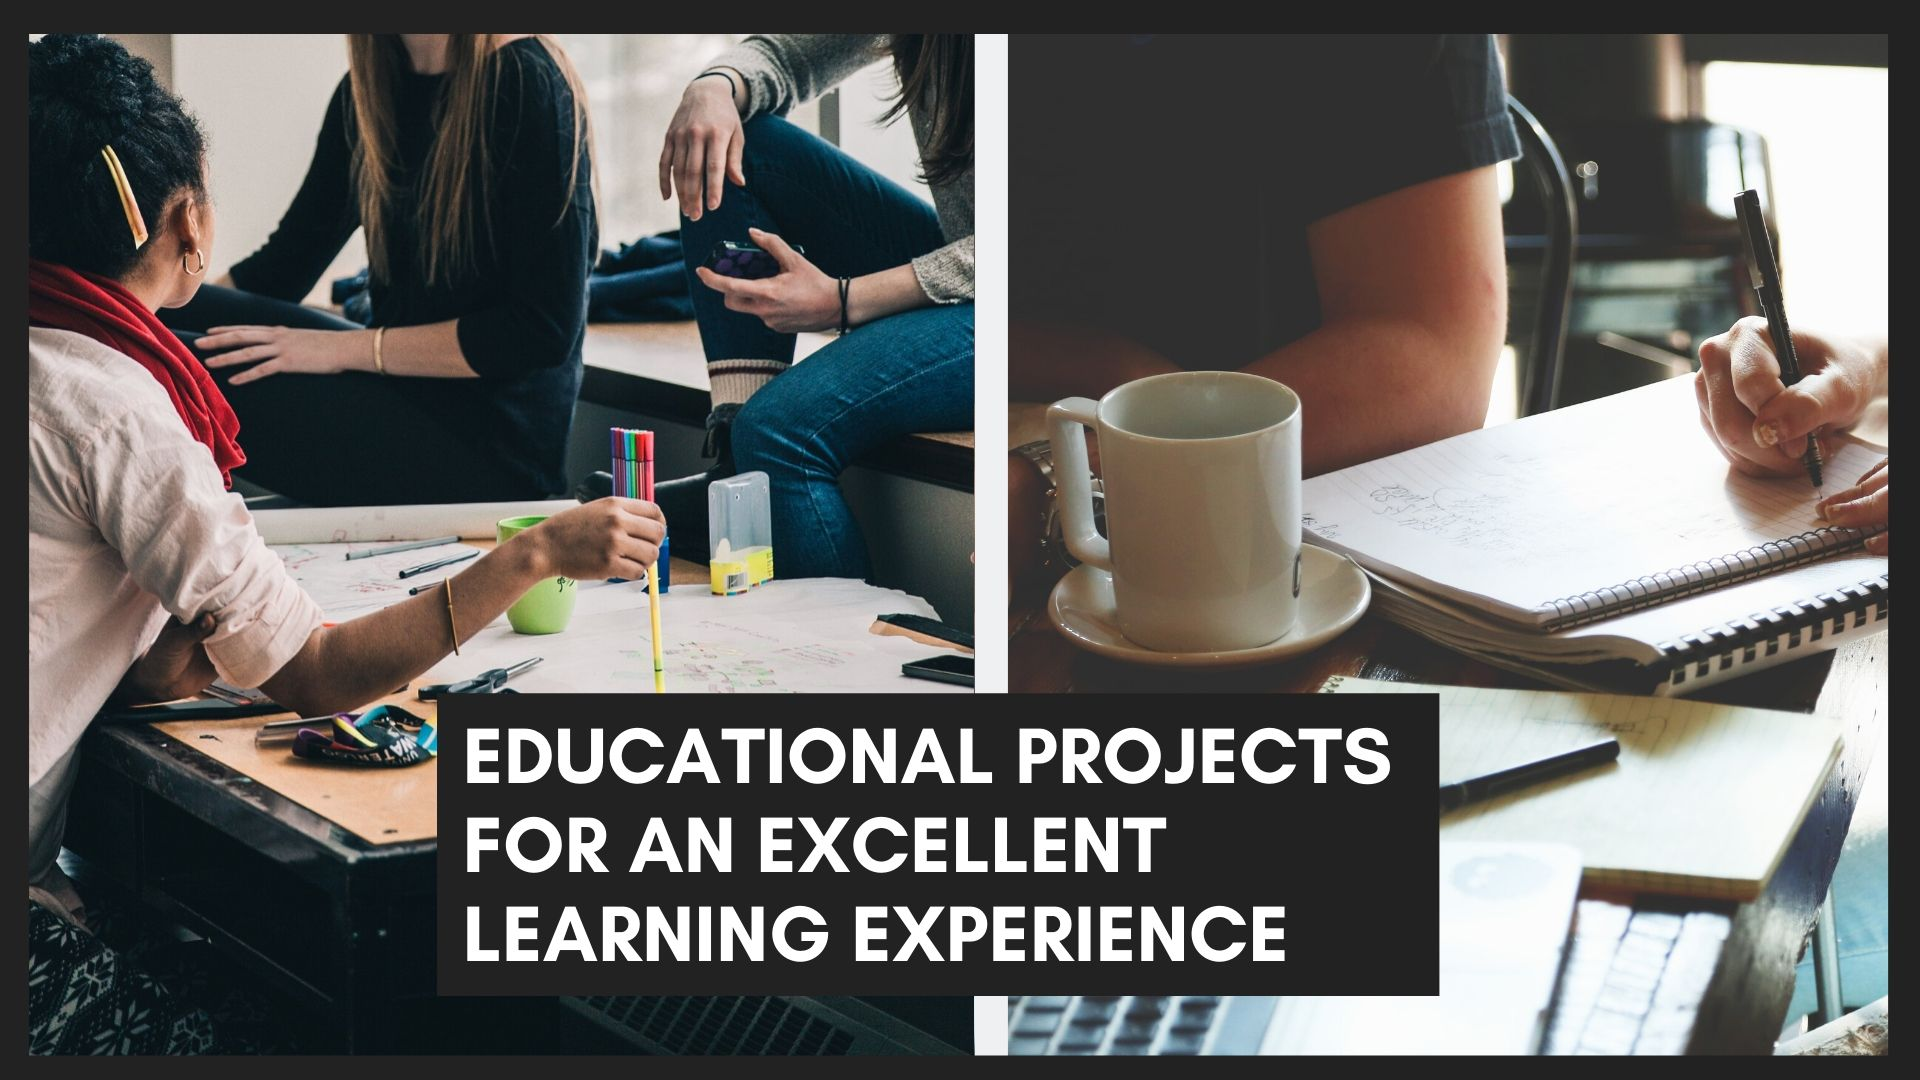 EDUCATIONAL PROJECTS for learning